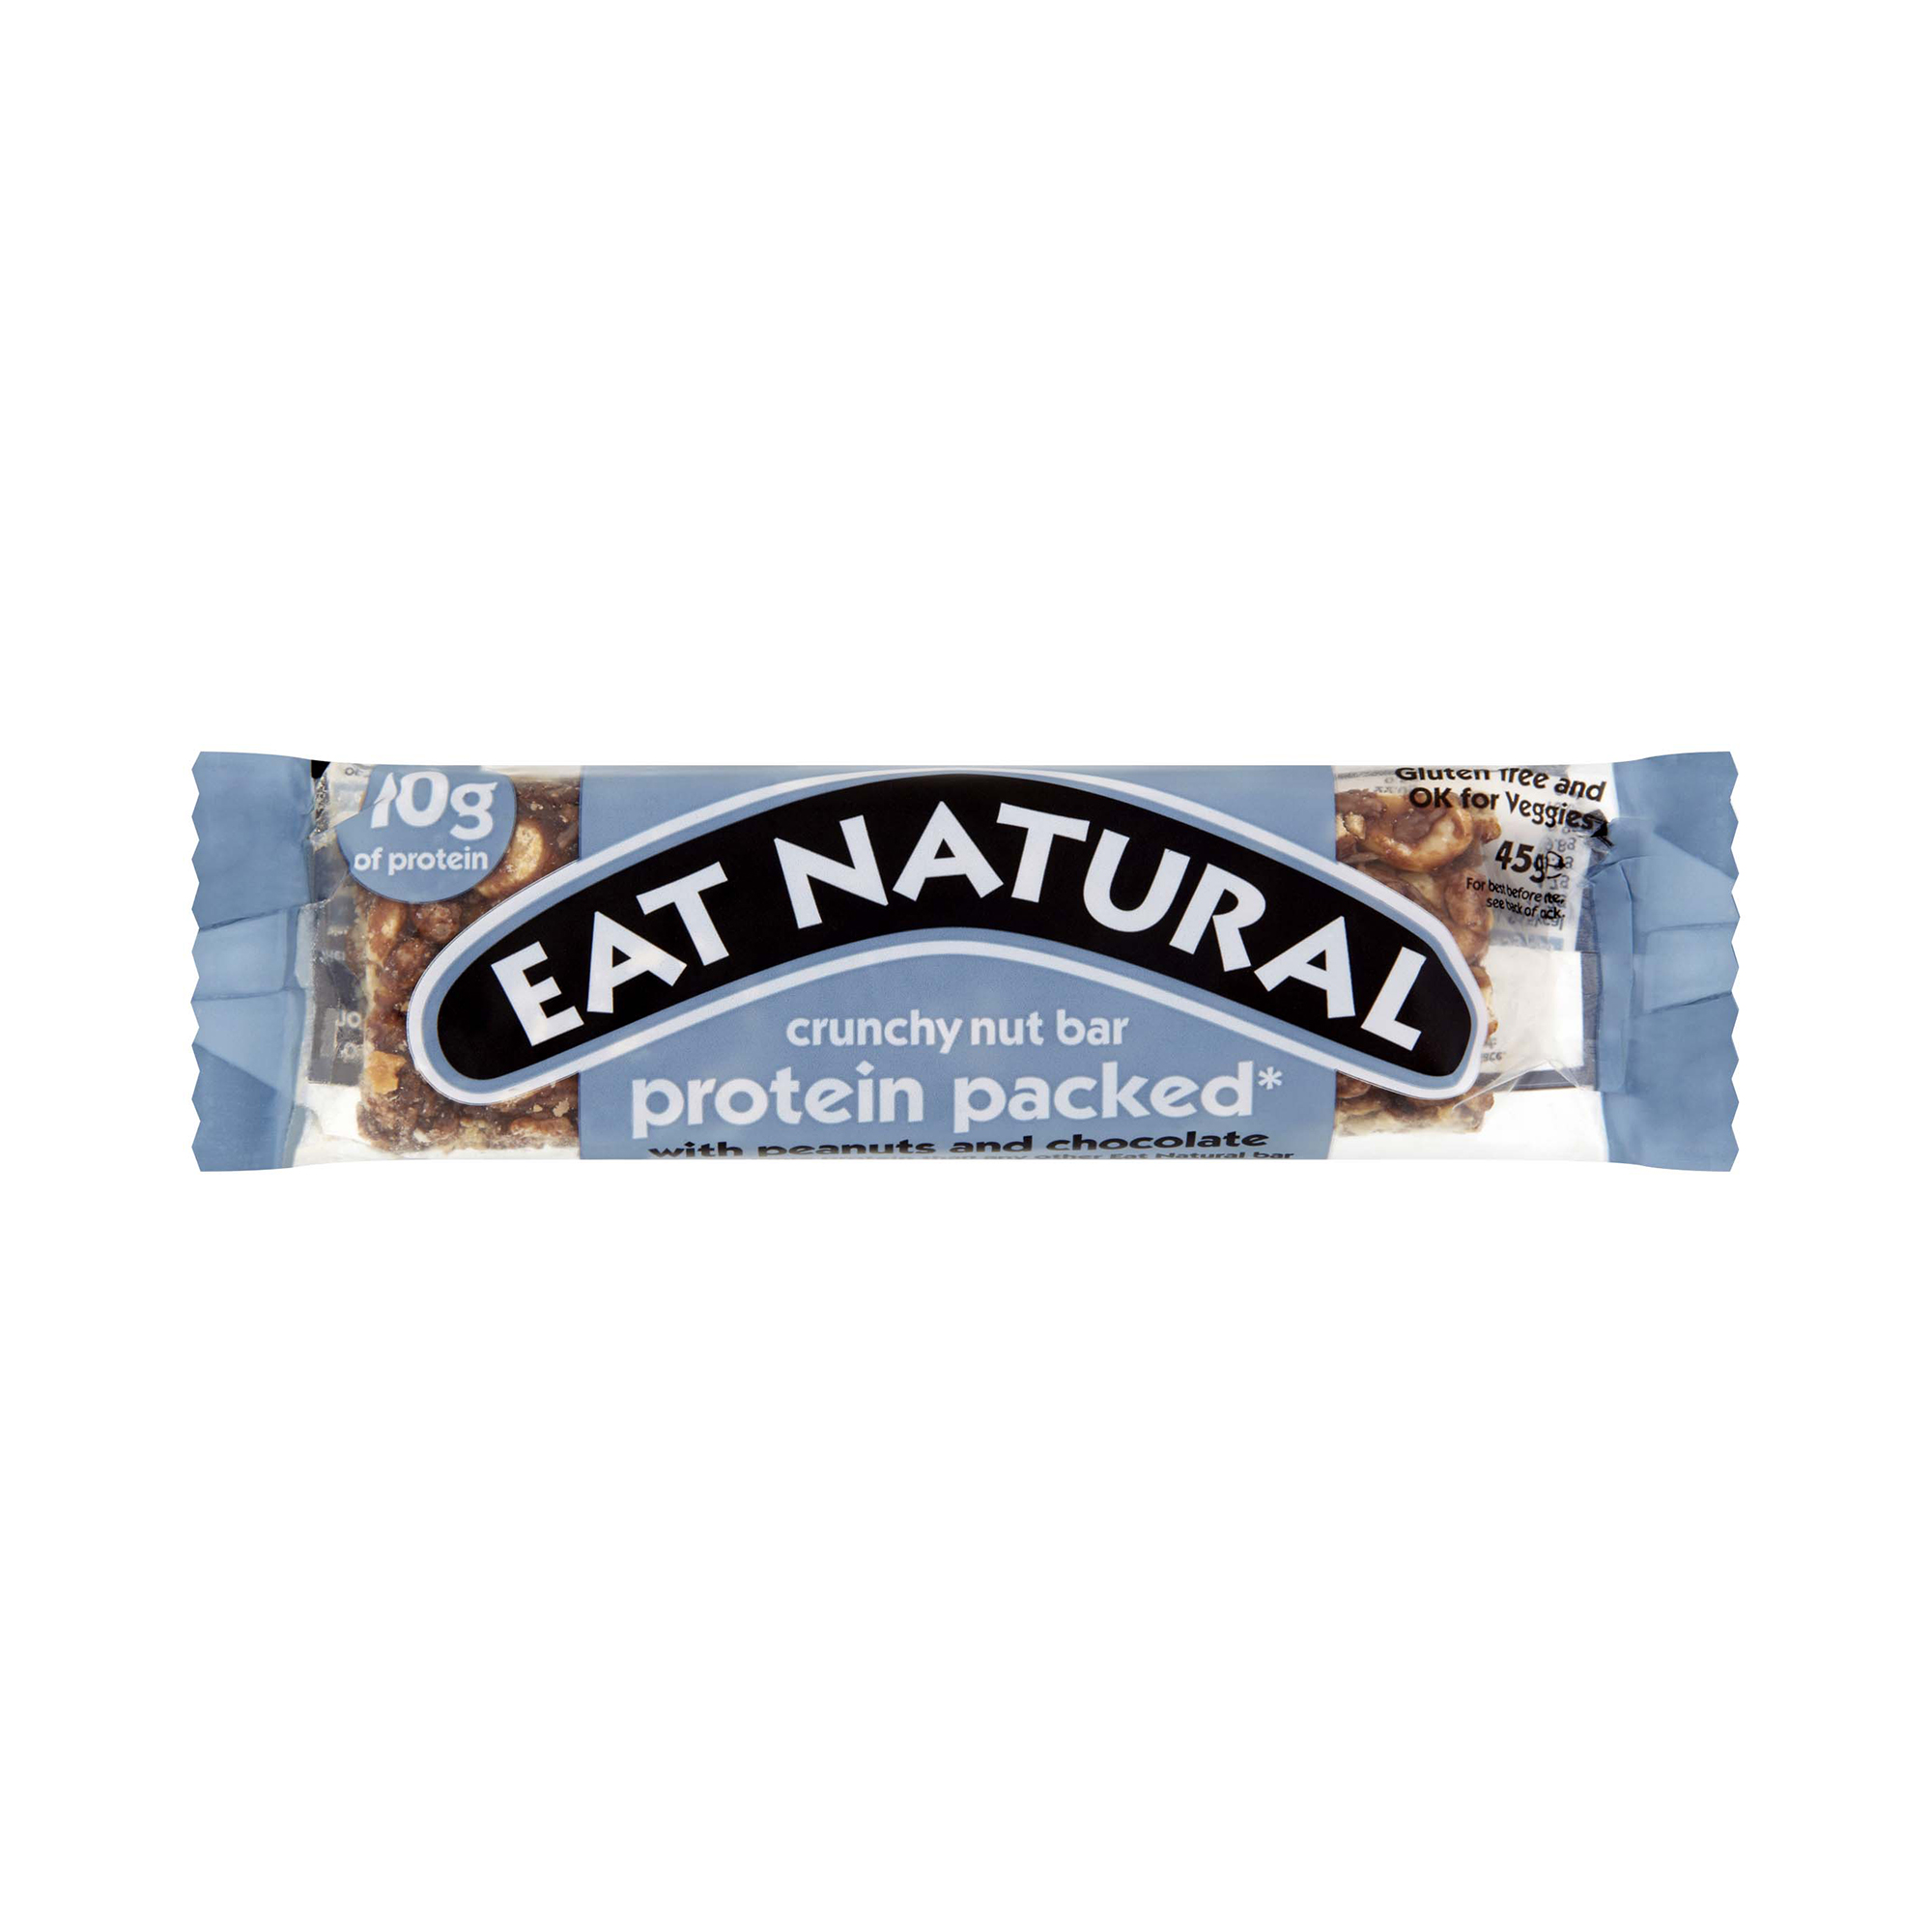 Breakfast / Snacks Eat Natural Crunchy Nut Bar Peanuts & Chocolate 45g Ref PRO [Pack 12]